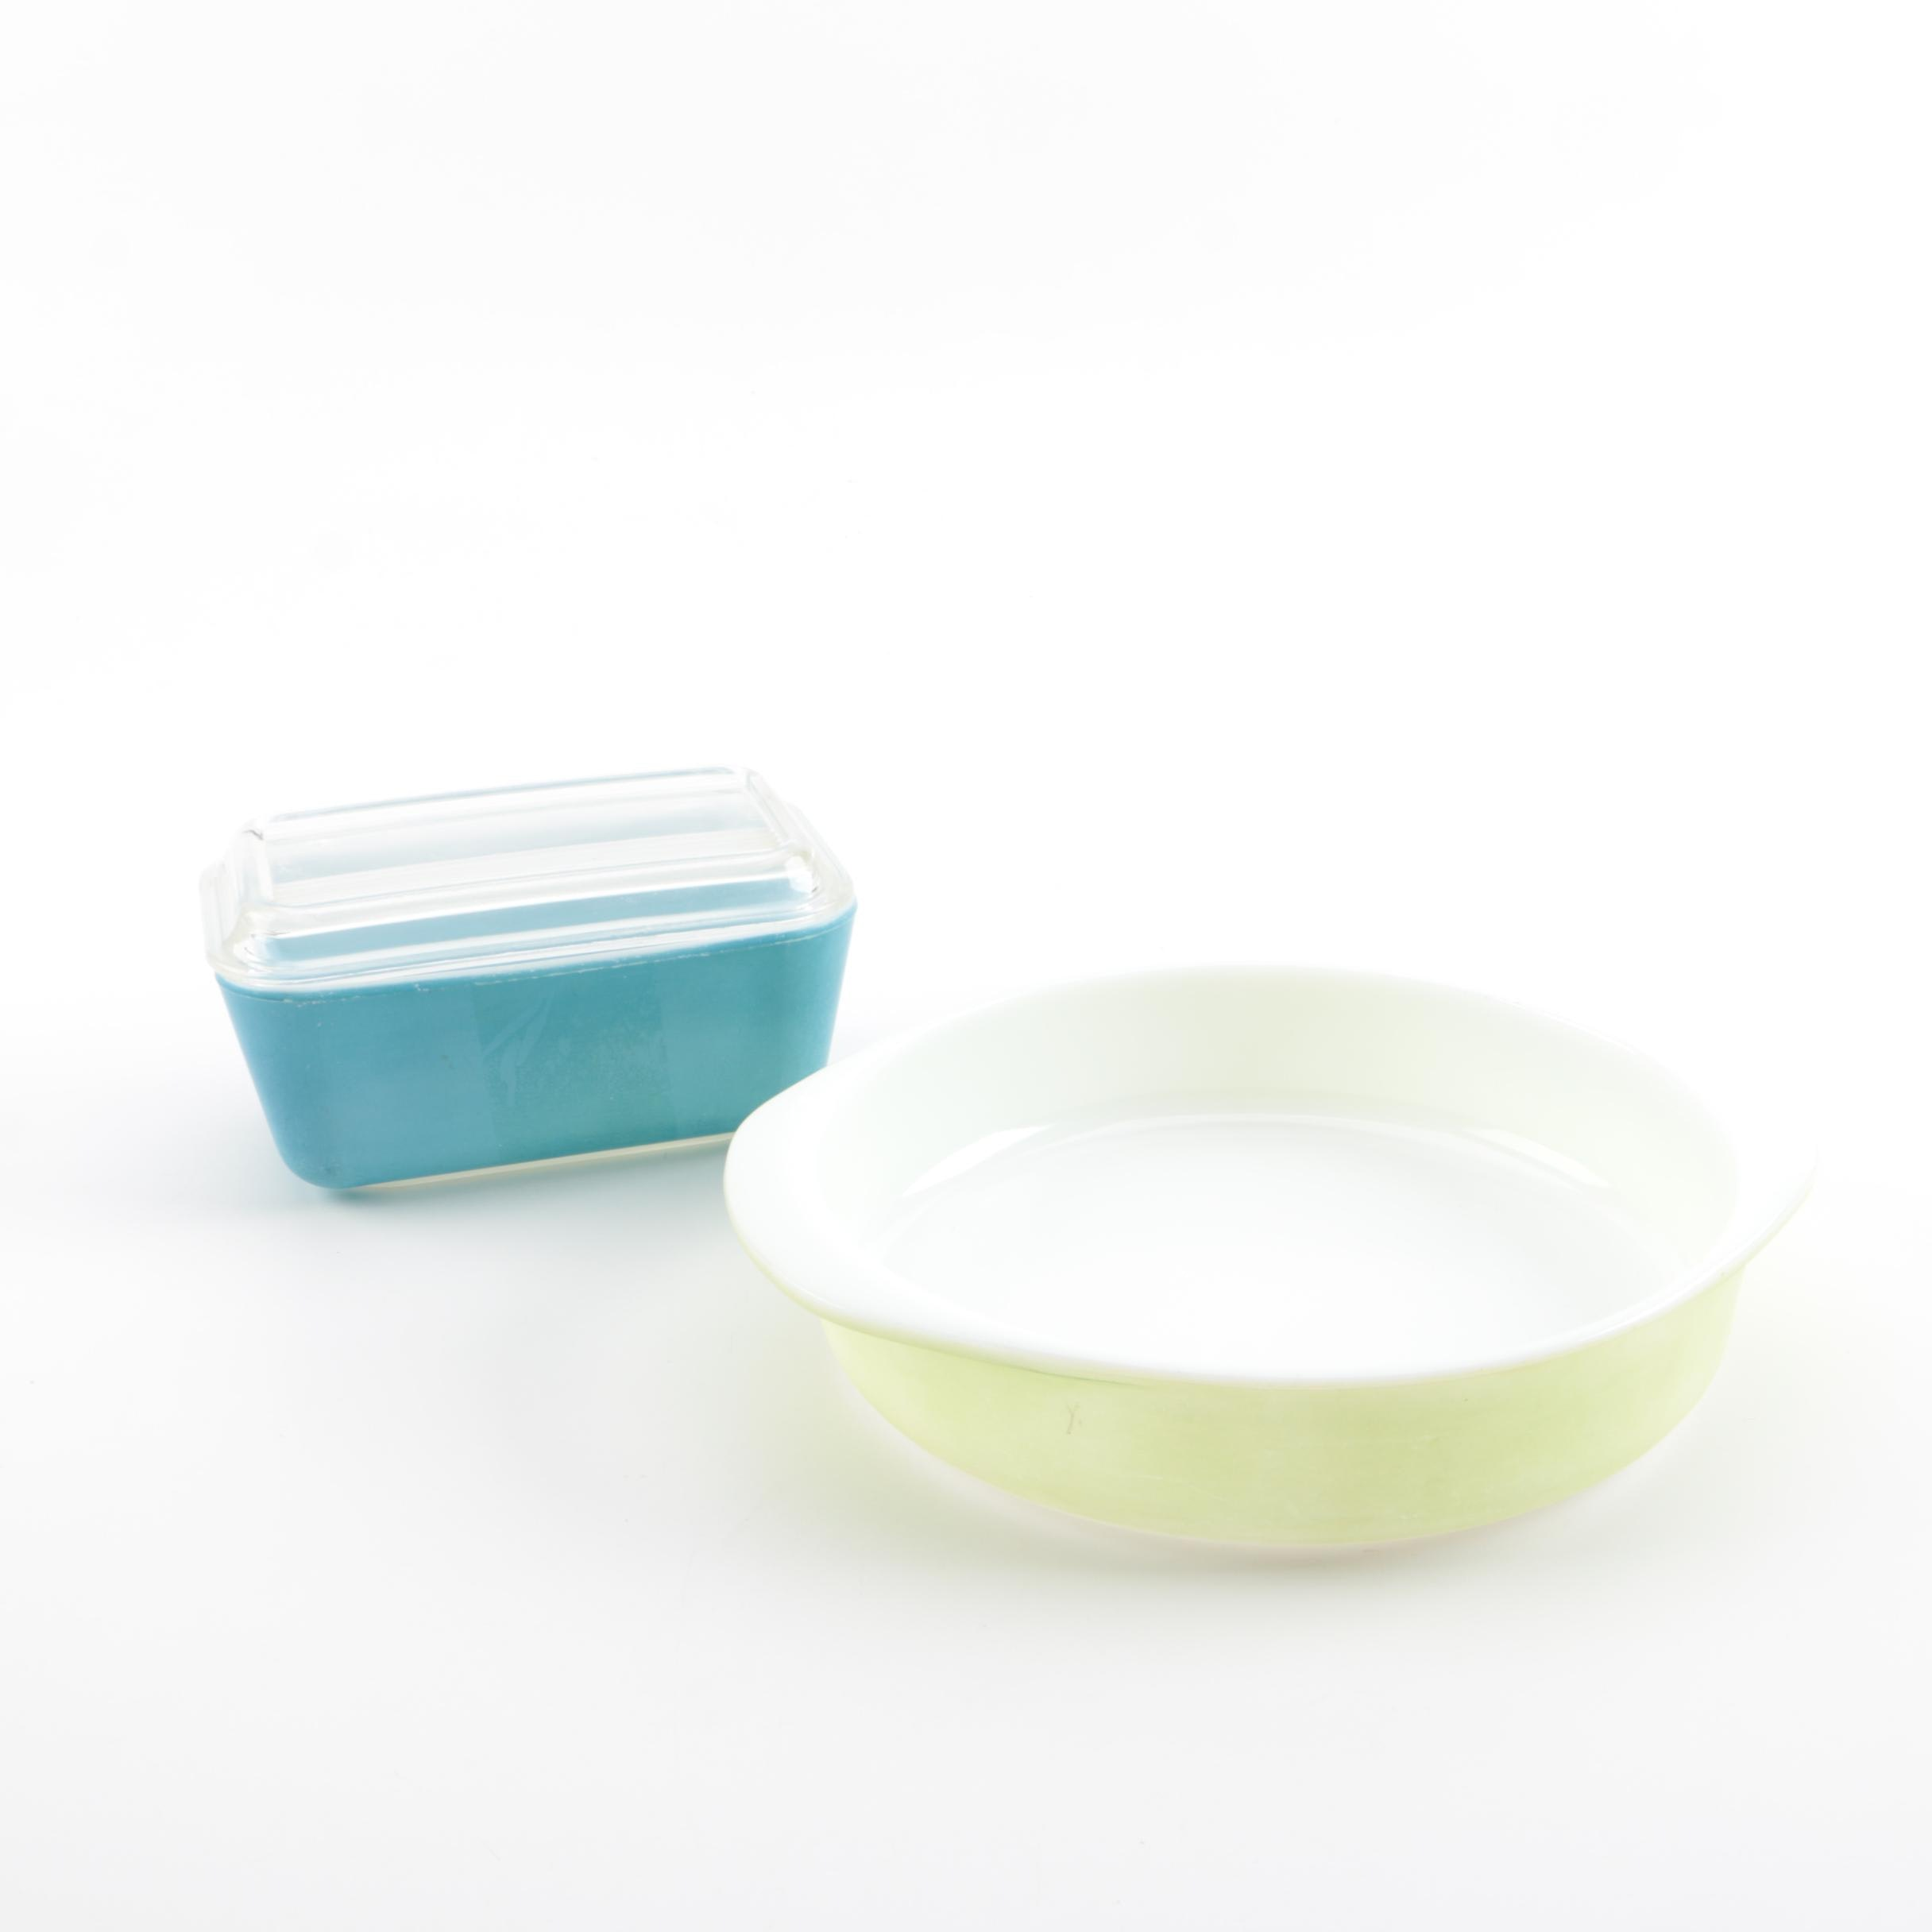 Vintage Pyrex Refrigerator and Baking Dishes